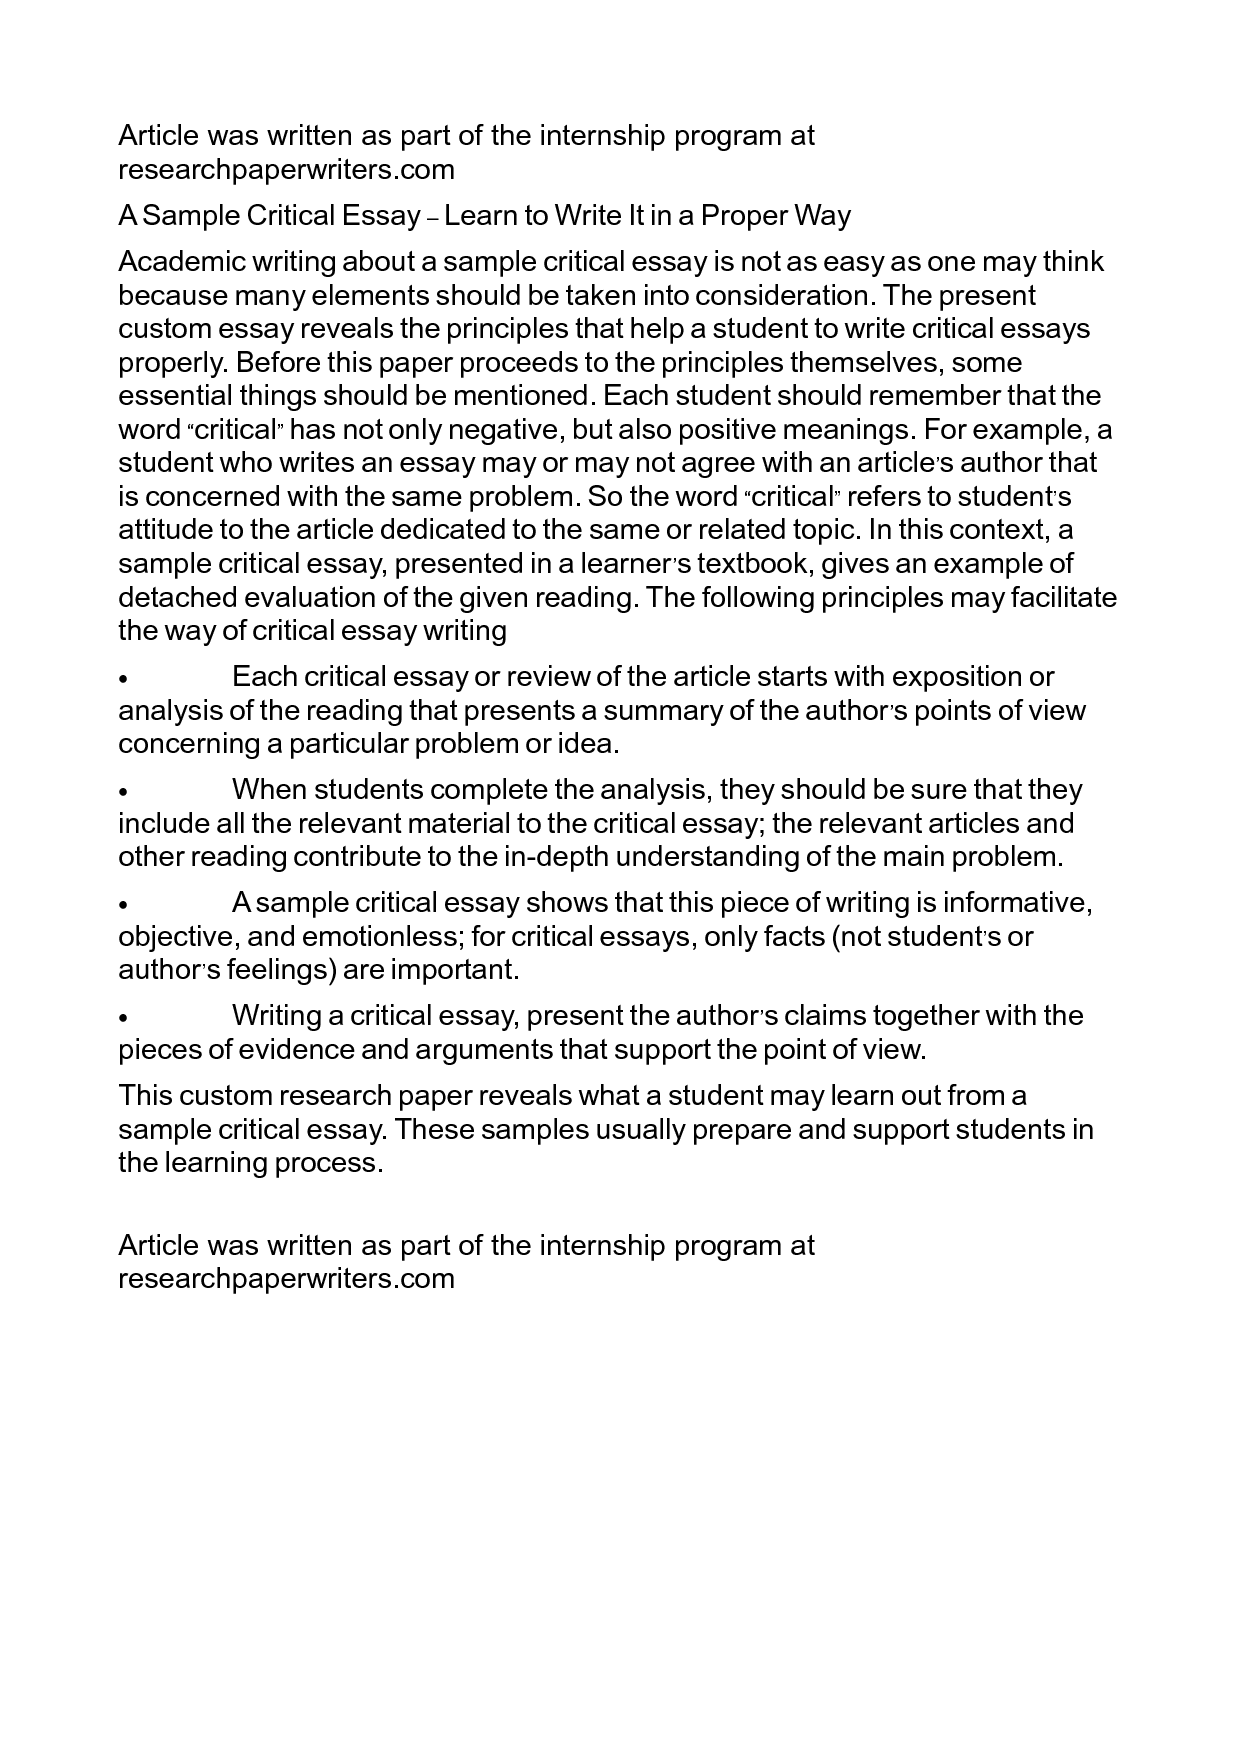 006 Essay Example How To Write Proper Frightening A Good Argumentative Outline Narrative For College Full